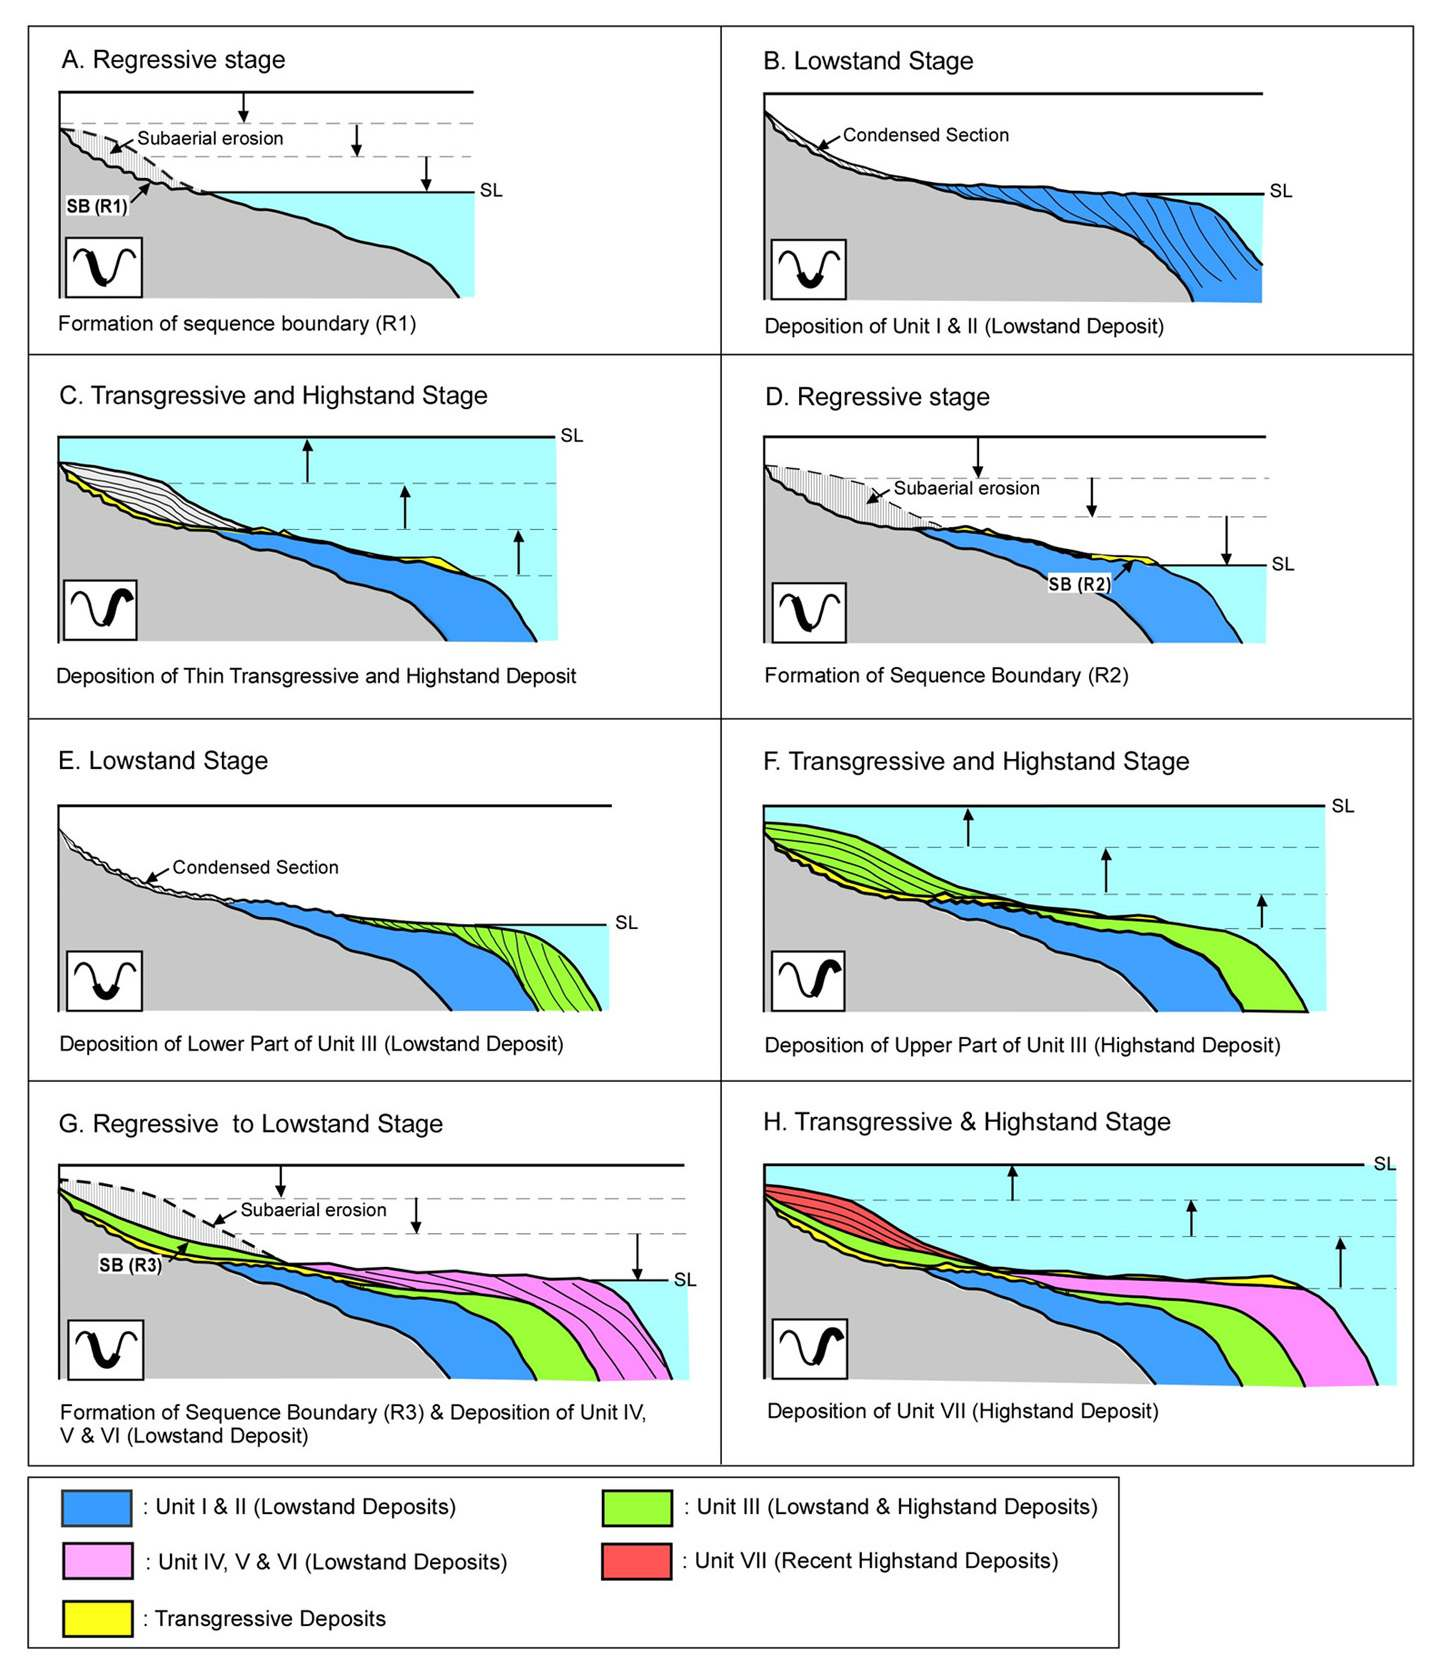 Fig. 3-3. Schematic diagram representing buildup of the Plio-Quaternary shelf sequences on the southeastern continental shelf of Korea created in response to sea-level fluctuations (from Yoo et al., 2006).